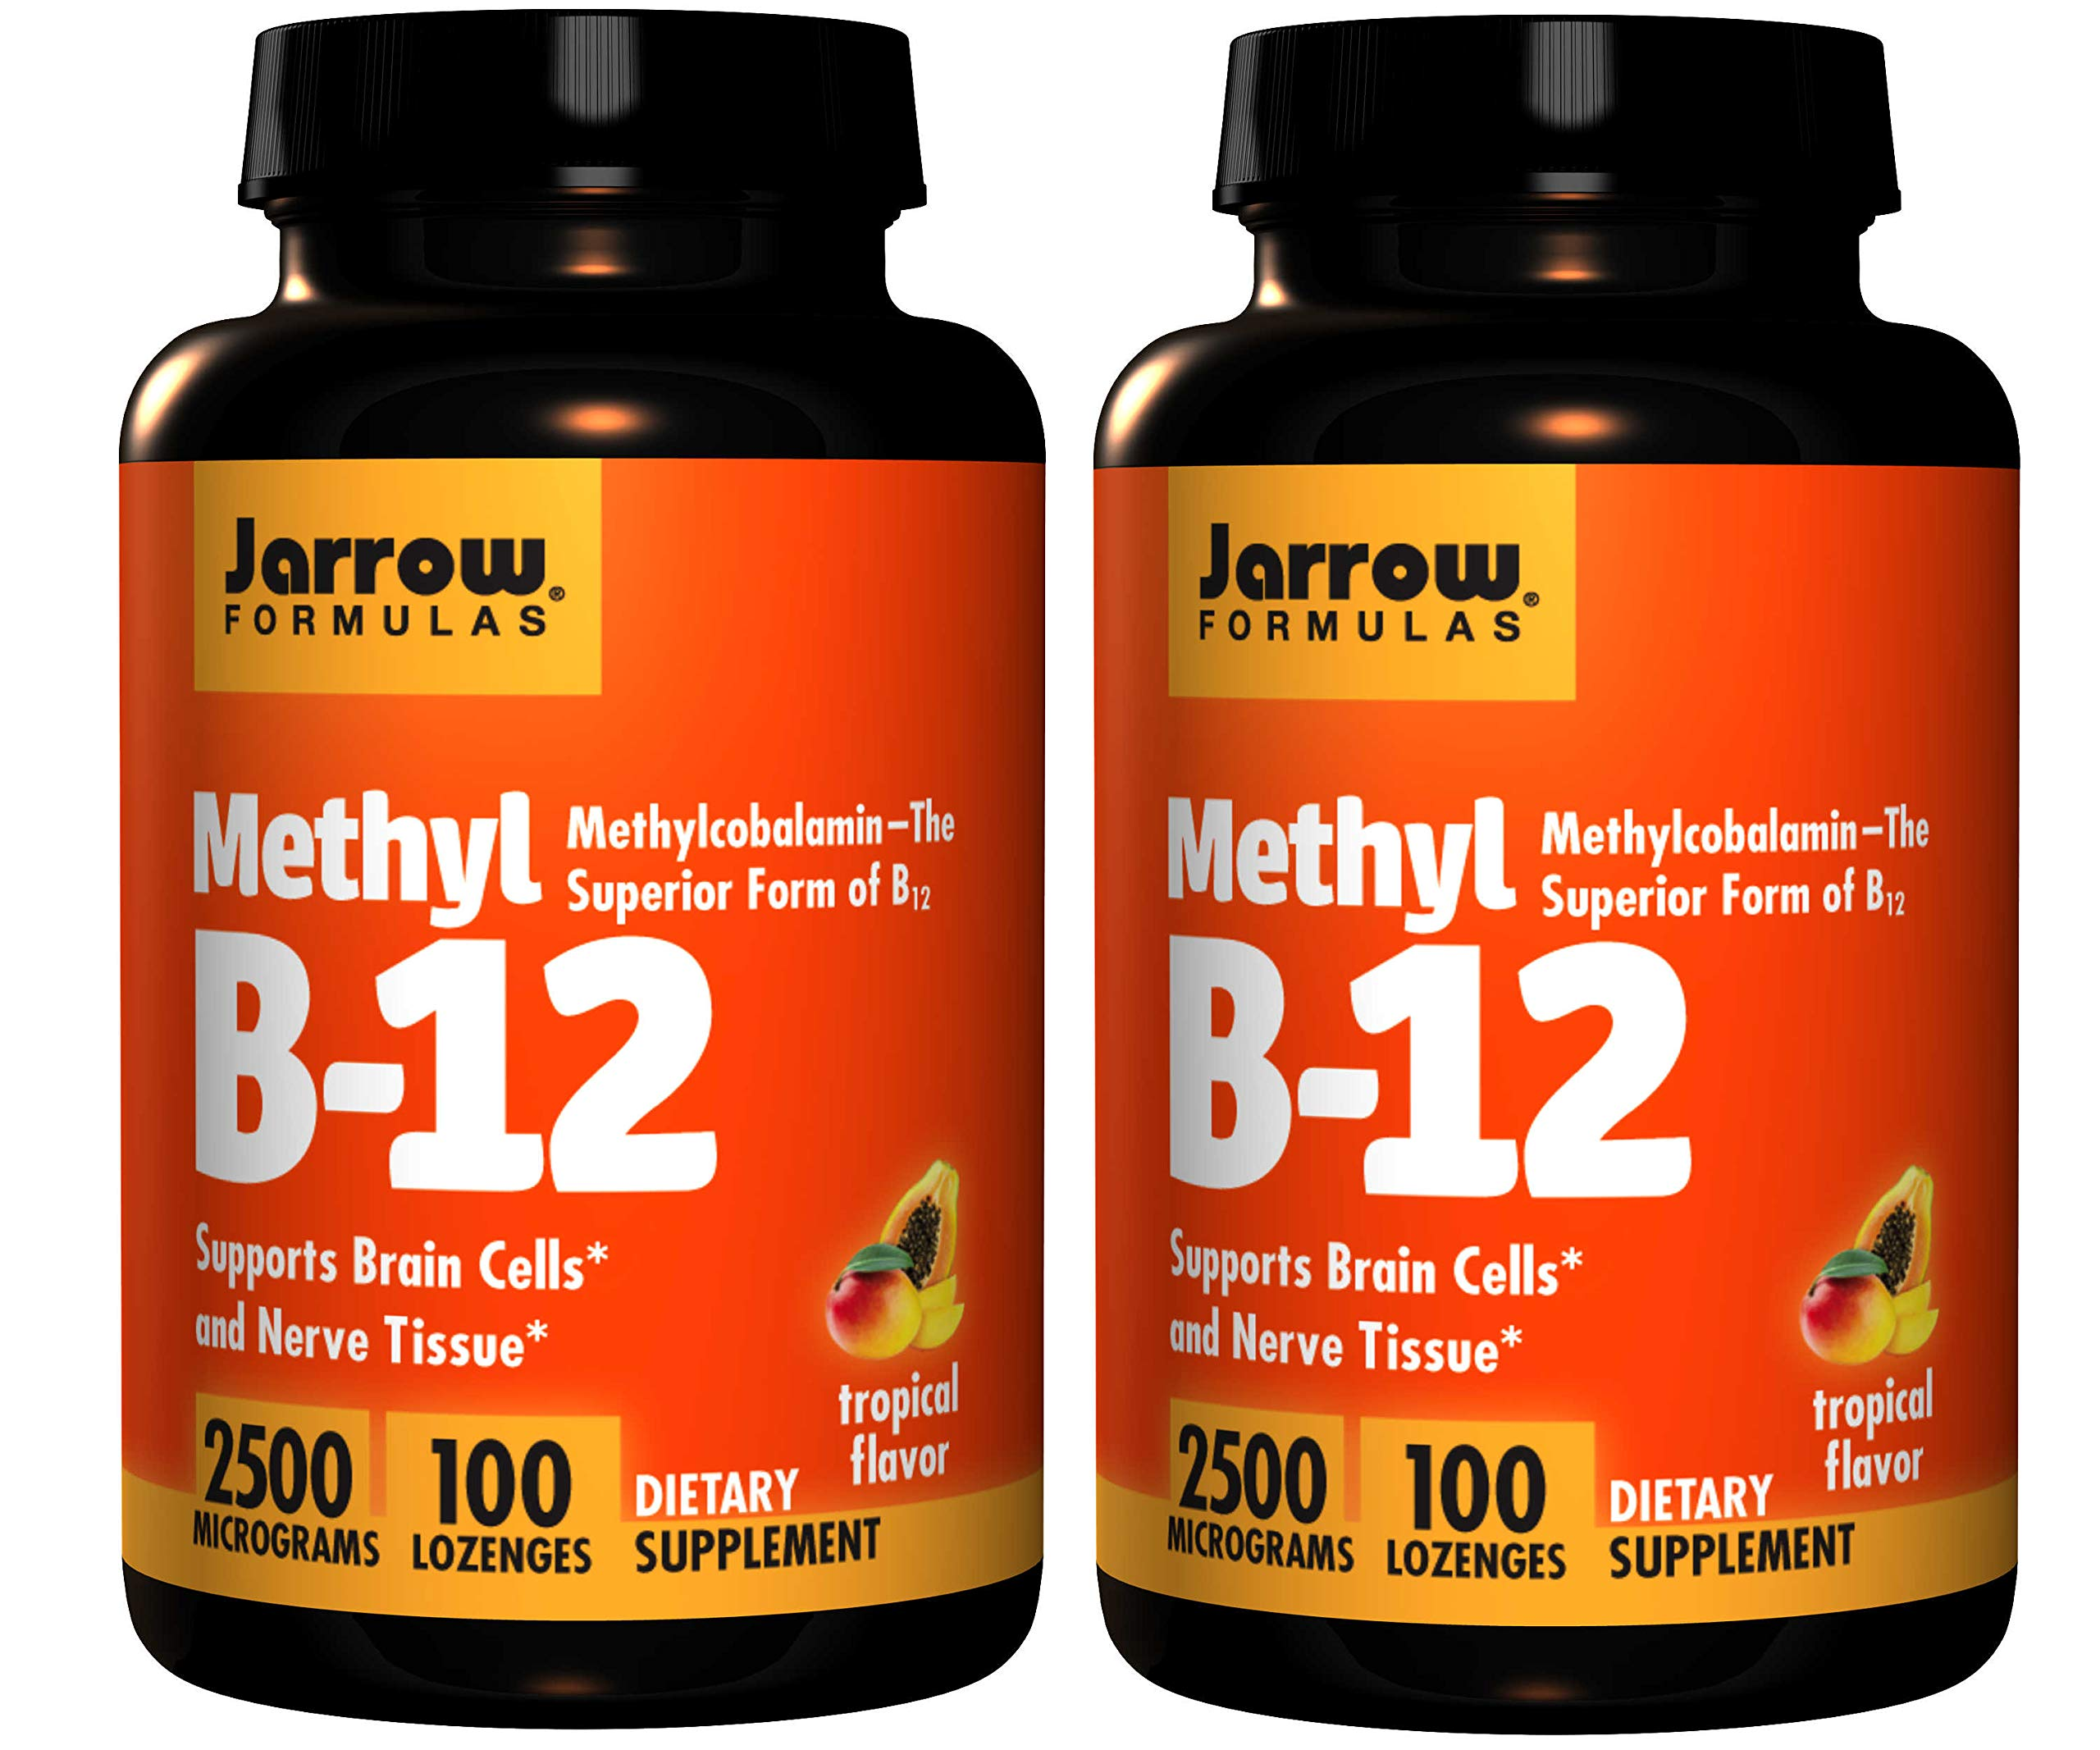 Jarrow Formulas Methyl B-12 Supports Brain Cells and Nerve Tissue 2500 Micrograms Dietary Supplement in Tropical Flavor - 100 Chewable Lozenges (Pack of 2)